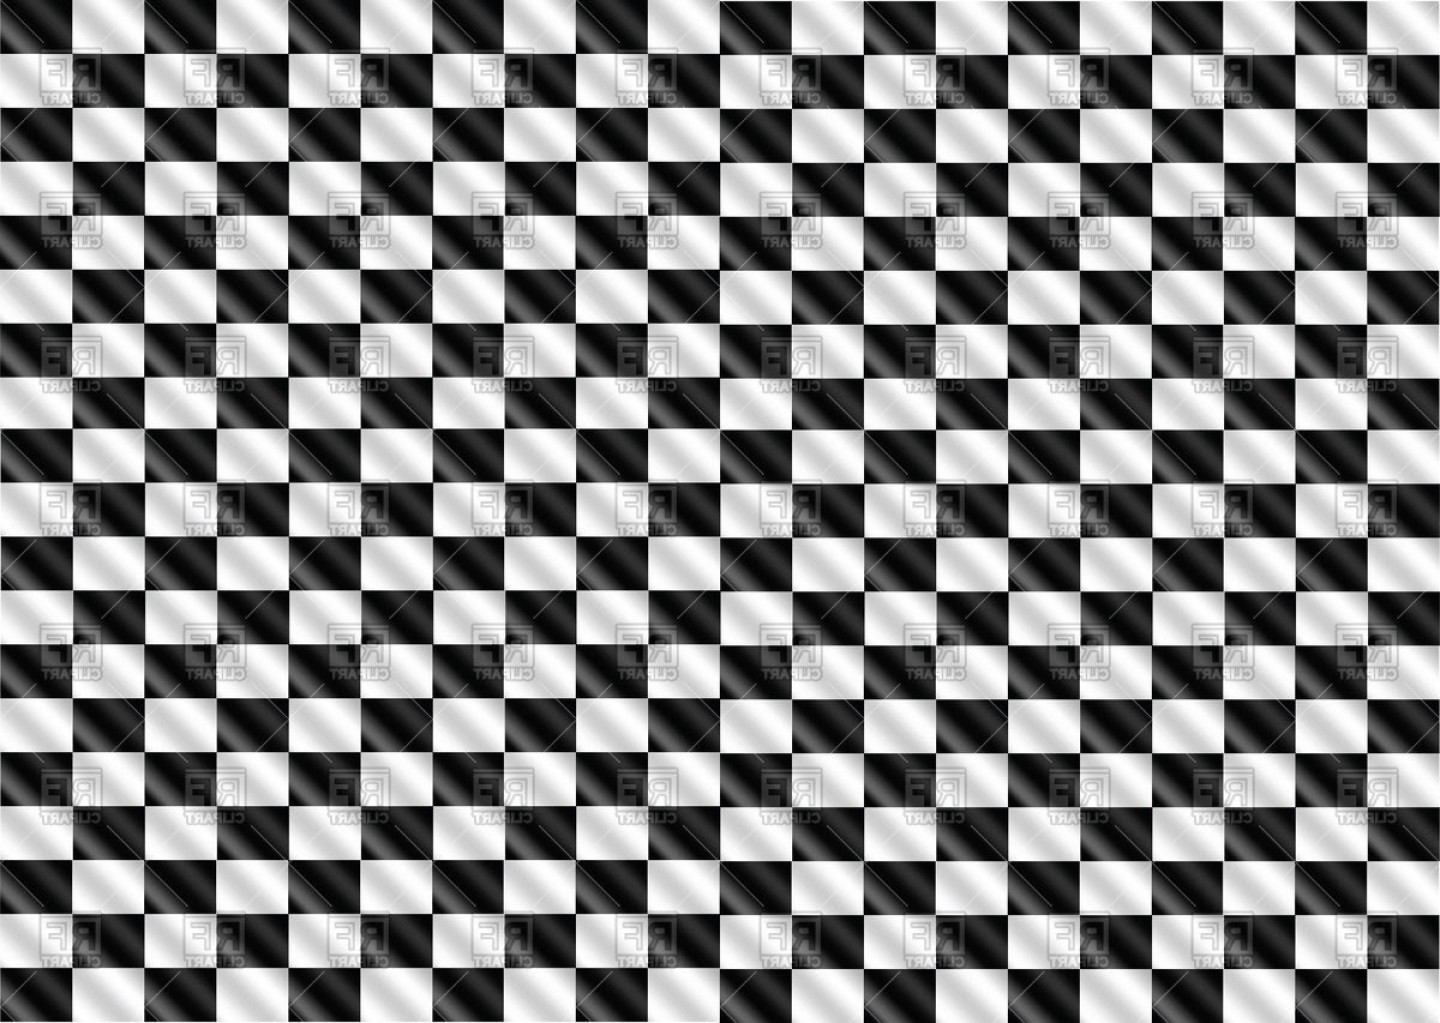 Checkered Flag Background Vector: Checkered Racing Flag Background Vector Clipart